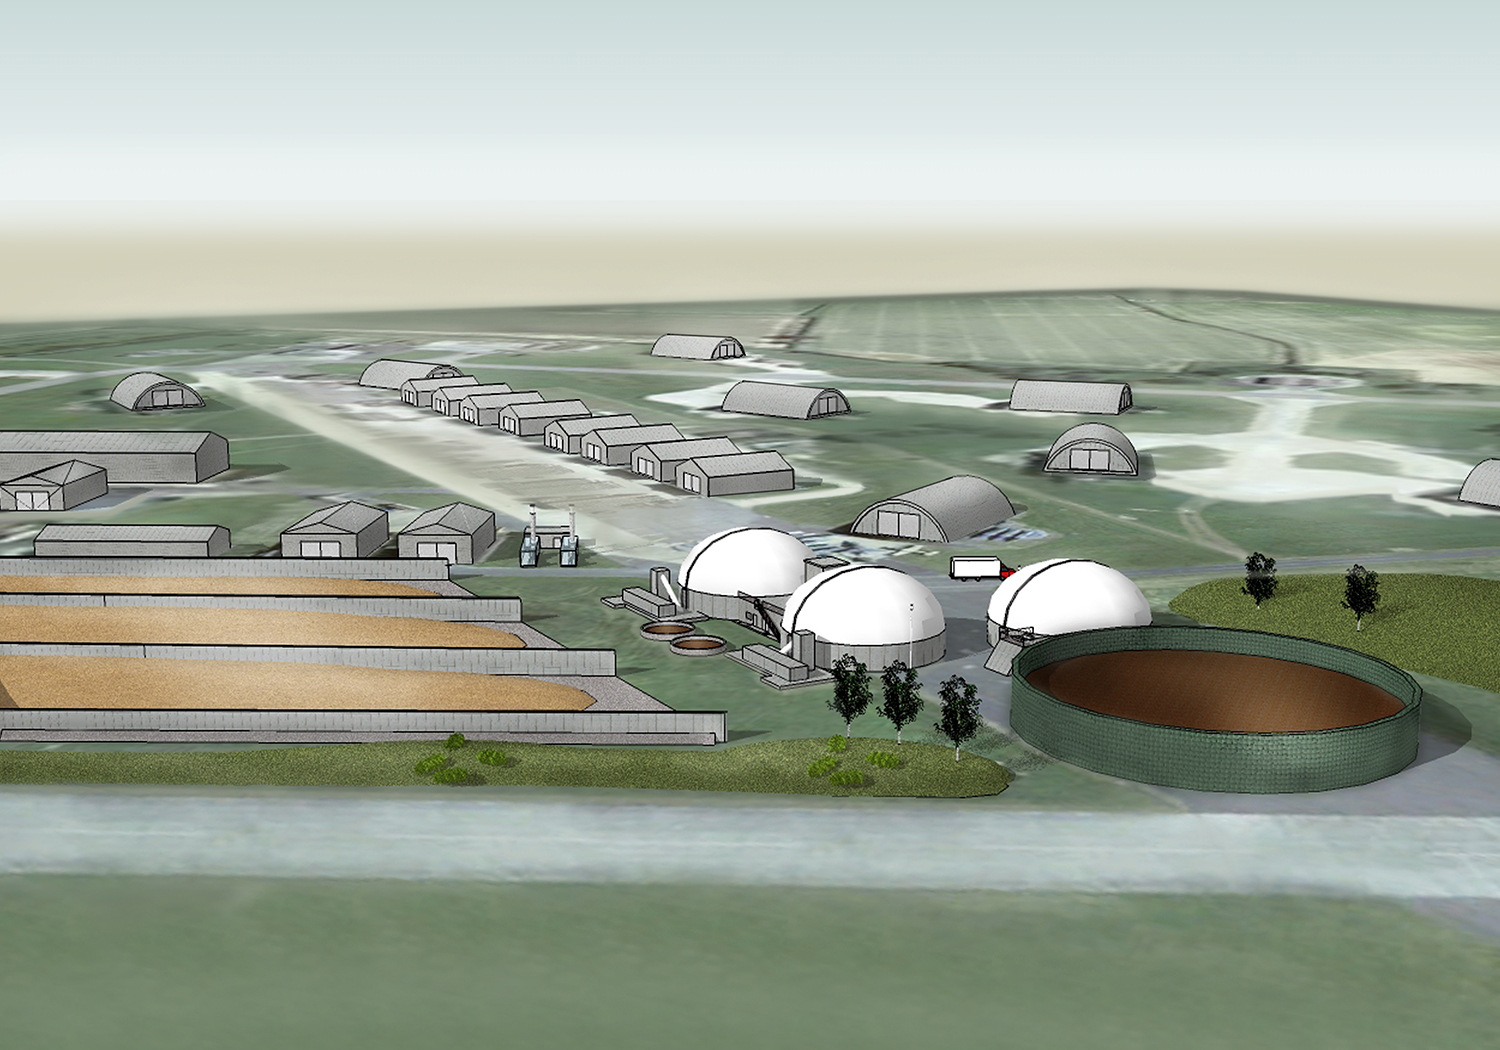 Projects-MineralsWaste-AgriGen-3DModel-1500x1050